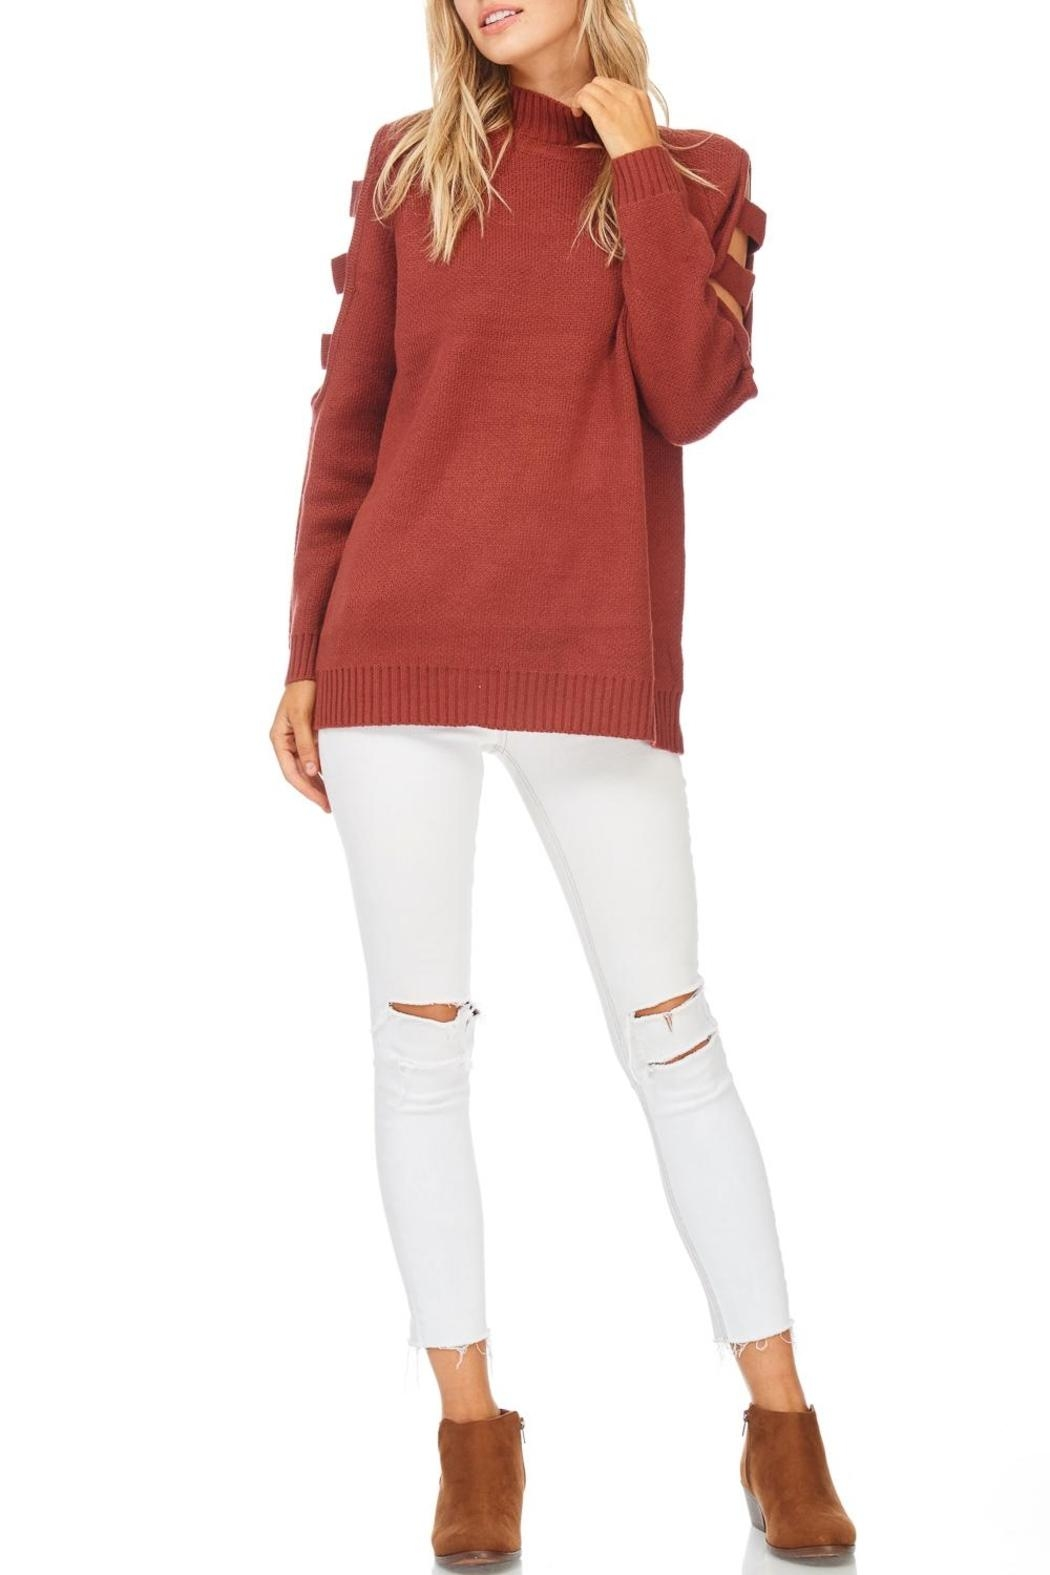 LoveRiche Brick Ladder Sleeve Sweater - Front Cropped Image